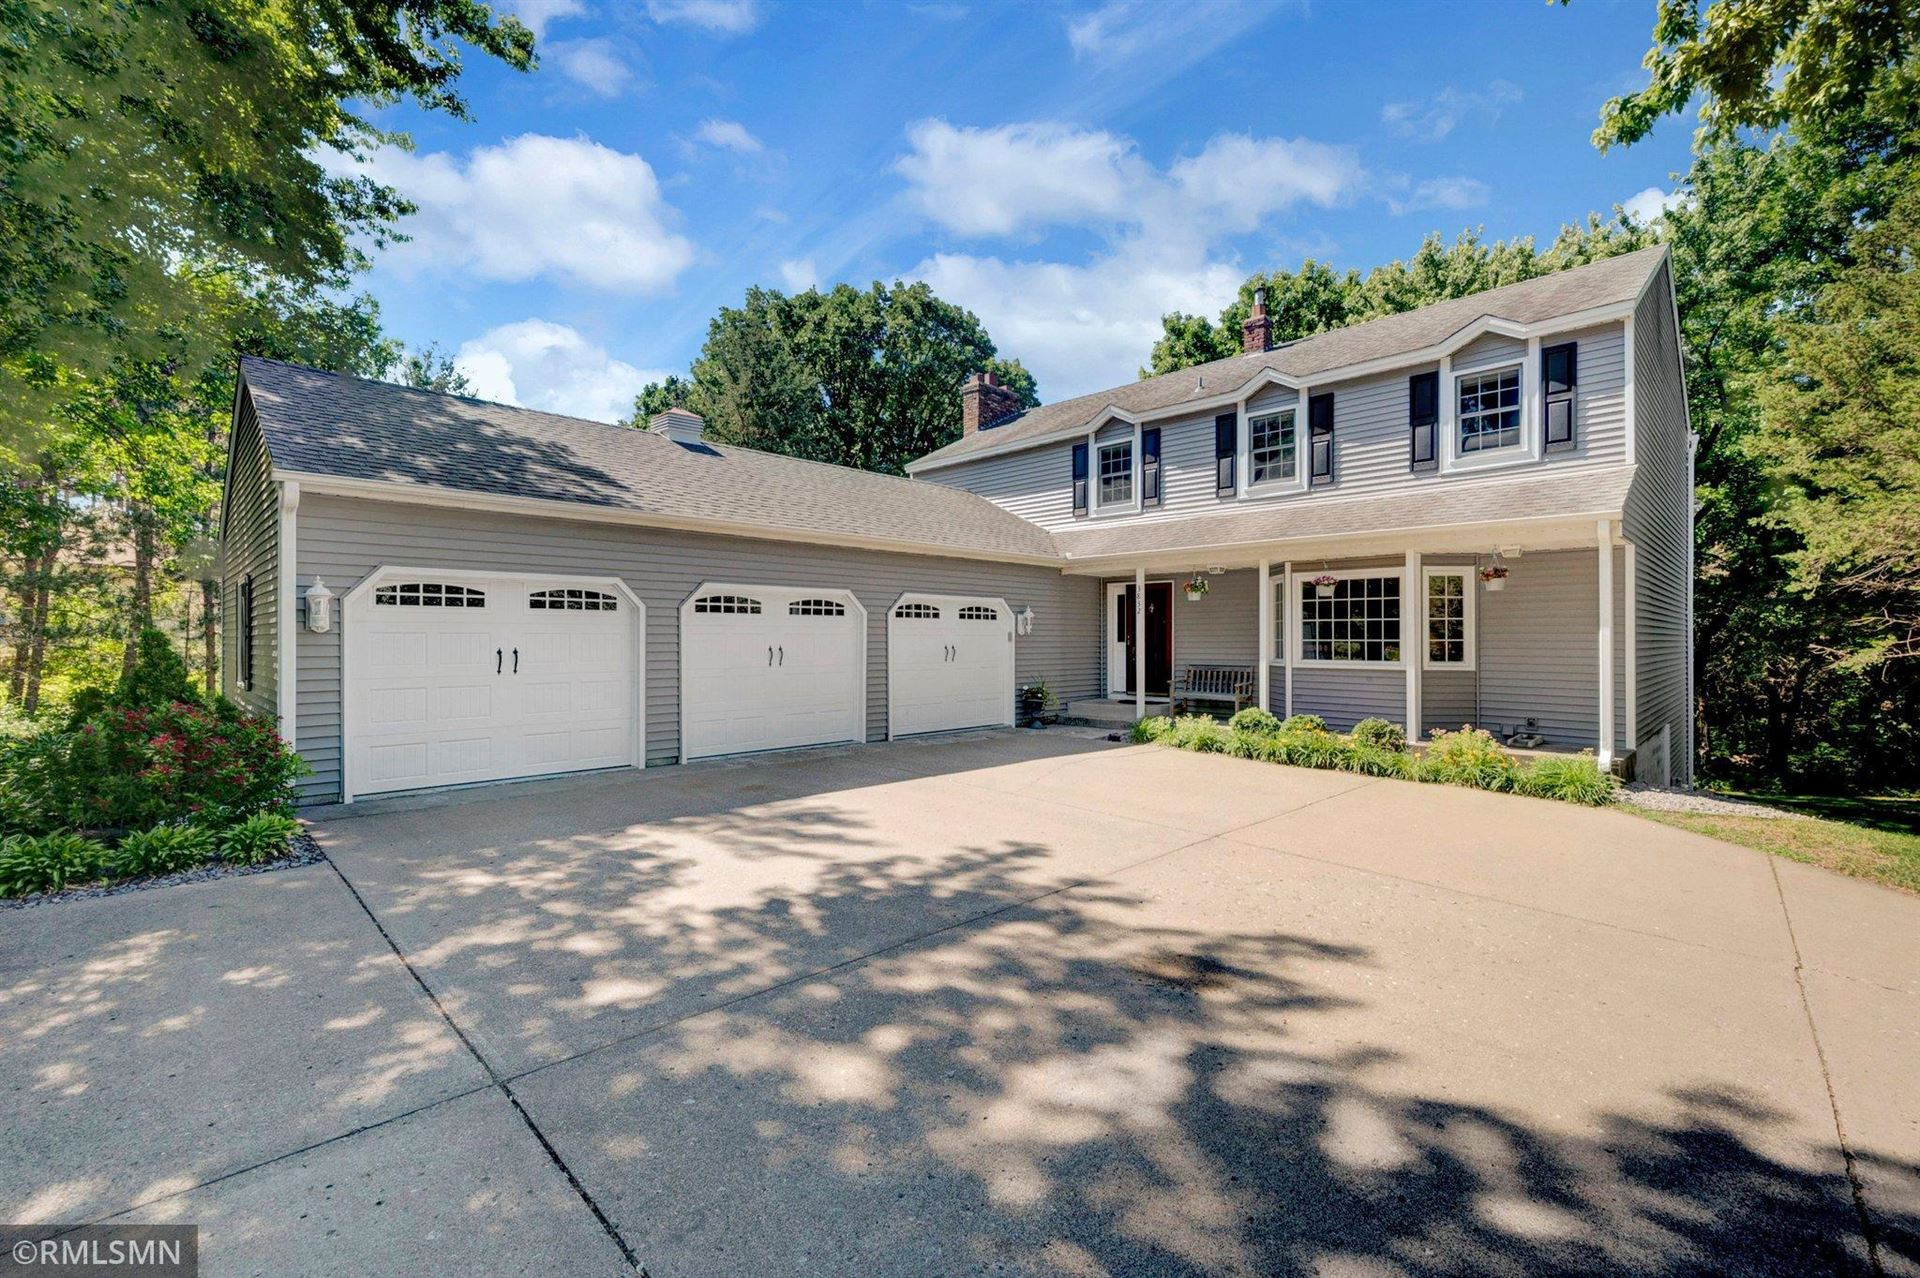 Photo of 3832 169th Lane NW, Andover, MN 55304 (MLS # 5756107)